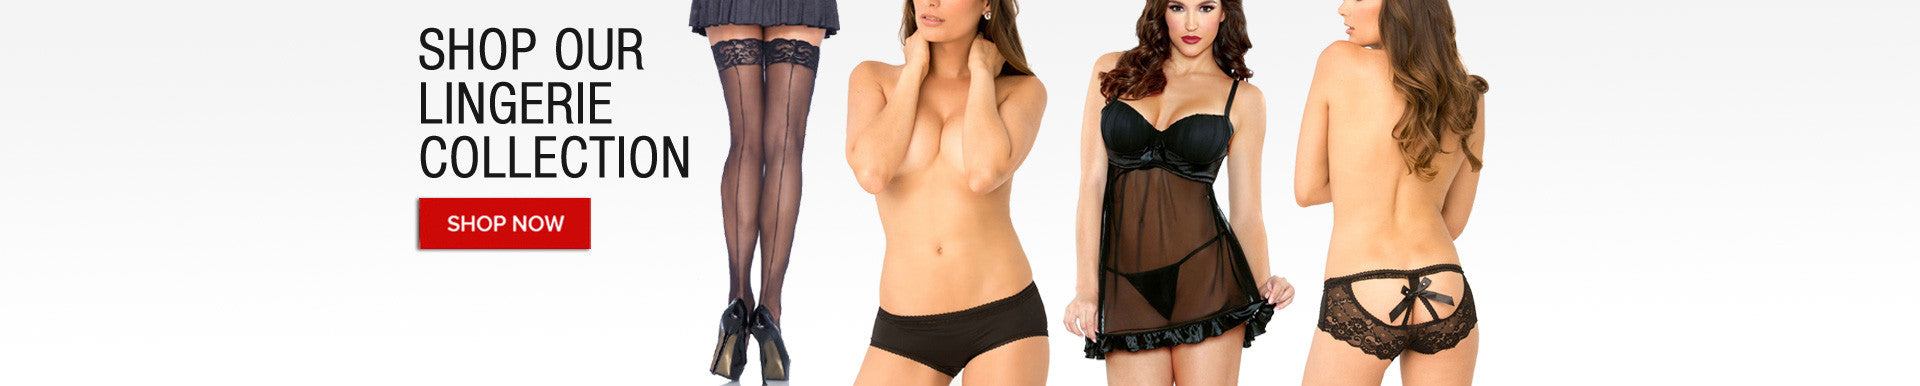 Search our Lingerie Collection